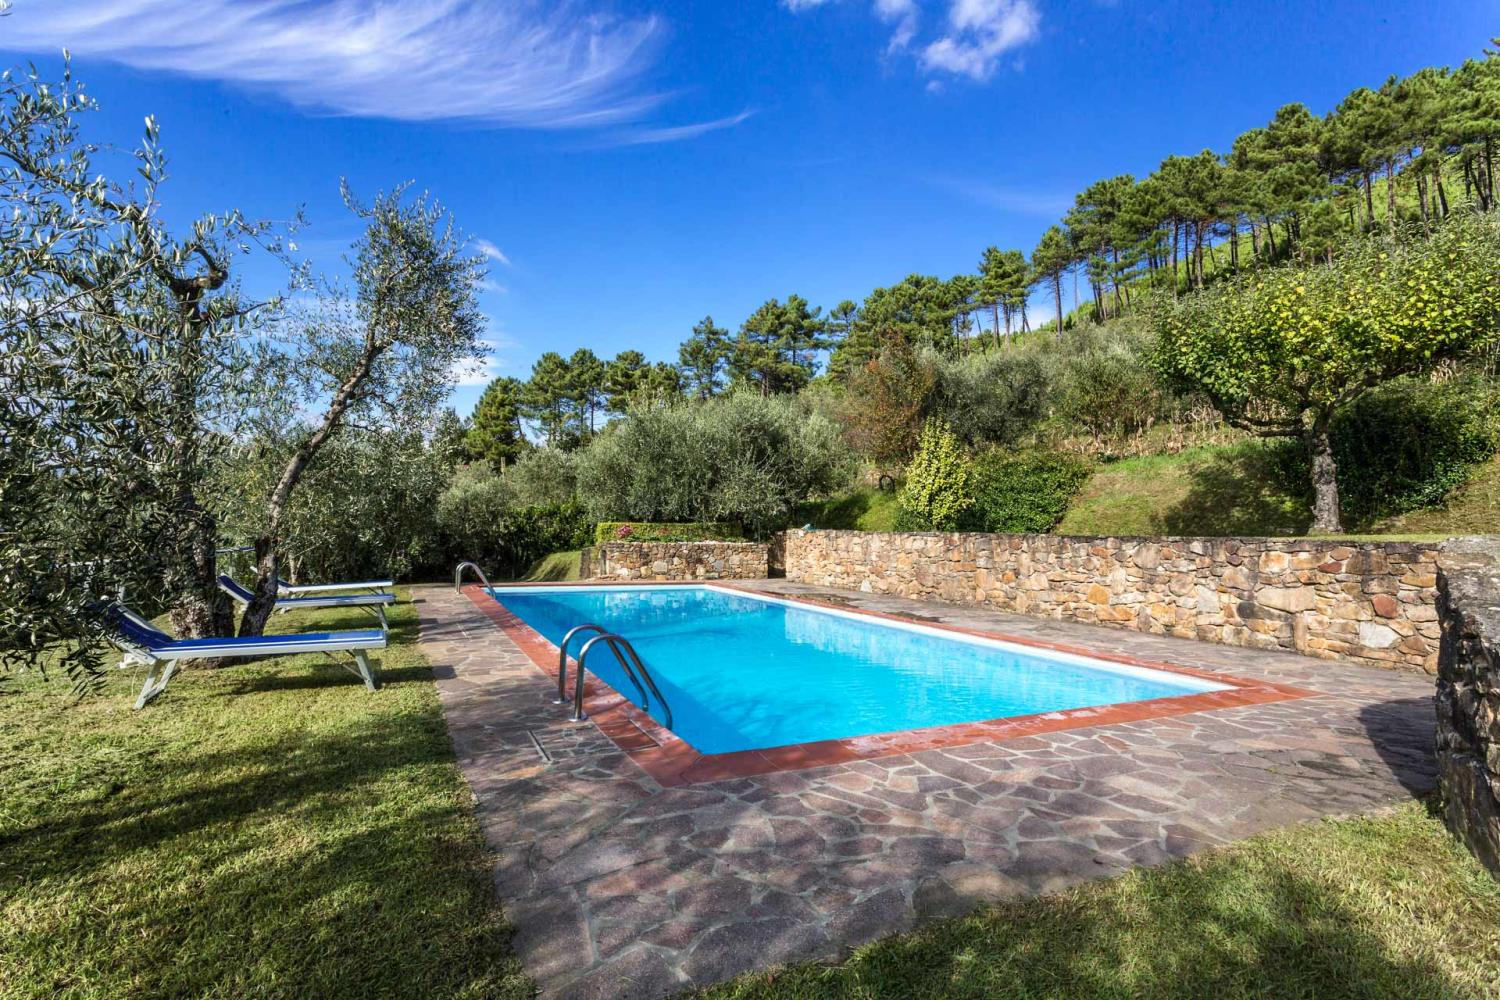 Outdoor pool, Casa Agrume, Tuscany, Lucca.